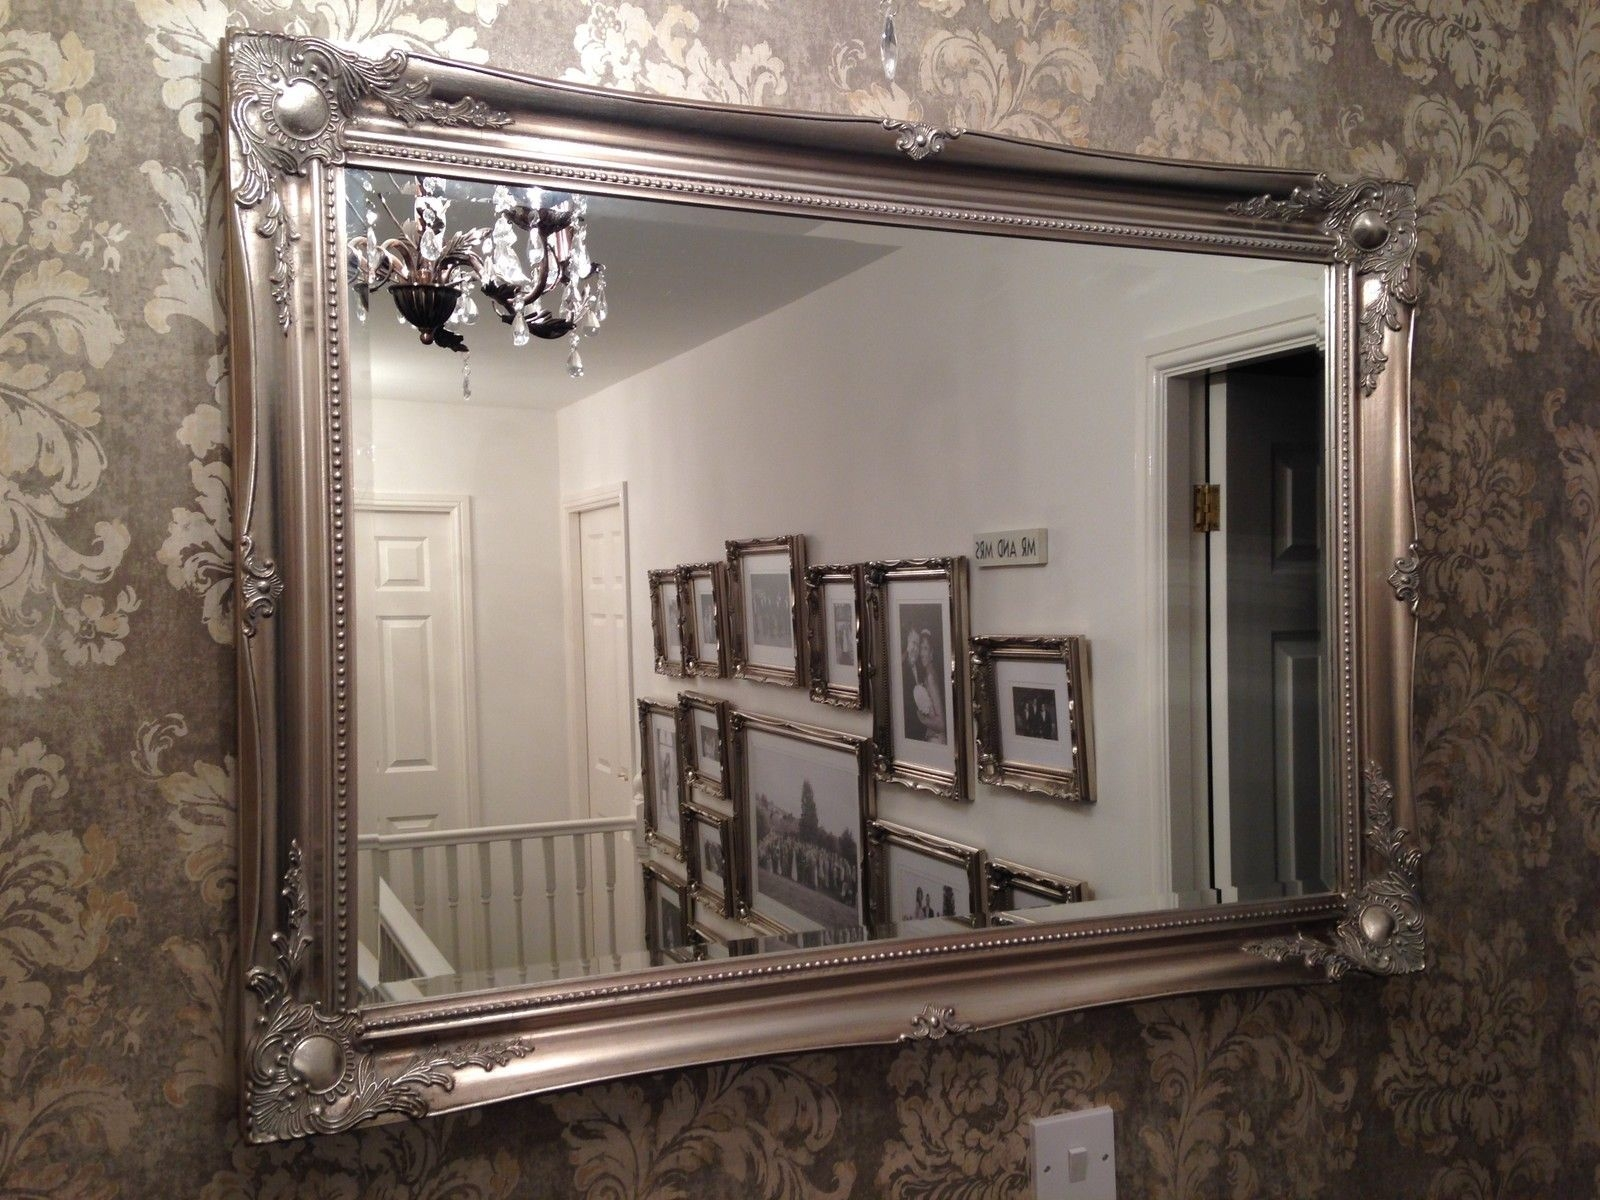 Delightful Ideas Large Decorative Wall Mirrors Tremendous Long Inside Long Decorative Mirror (Image 3 of 15)